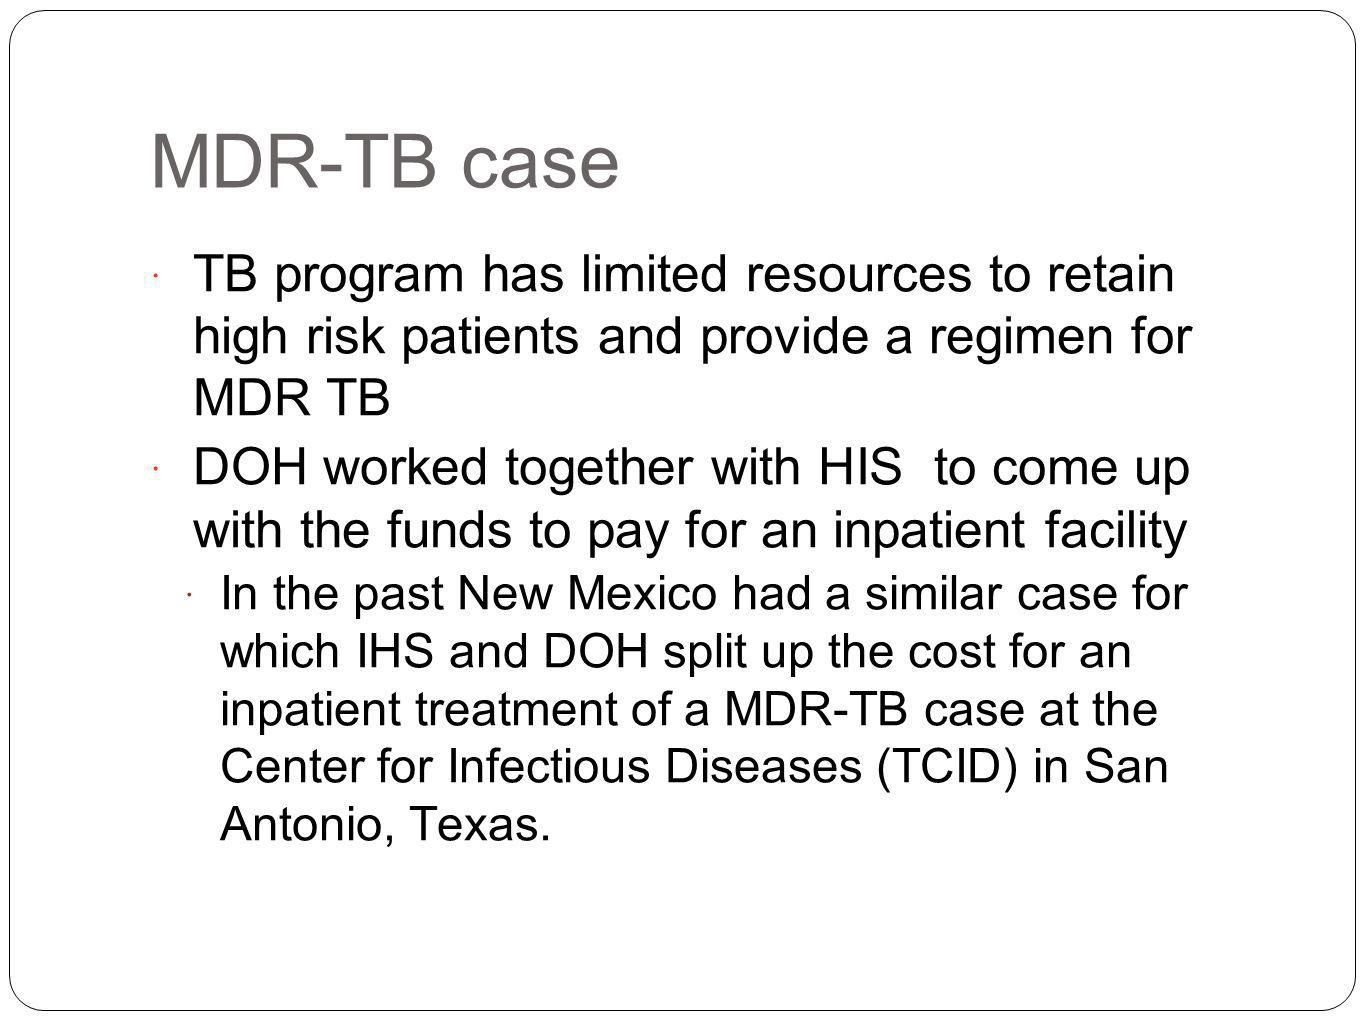 MDR-TB case TB program has limited resources to retain high risk patients and provide a regimen for MDR TB.